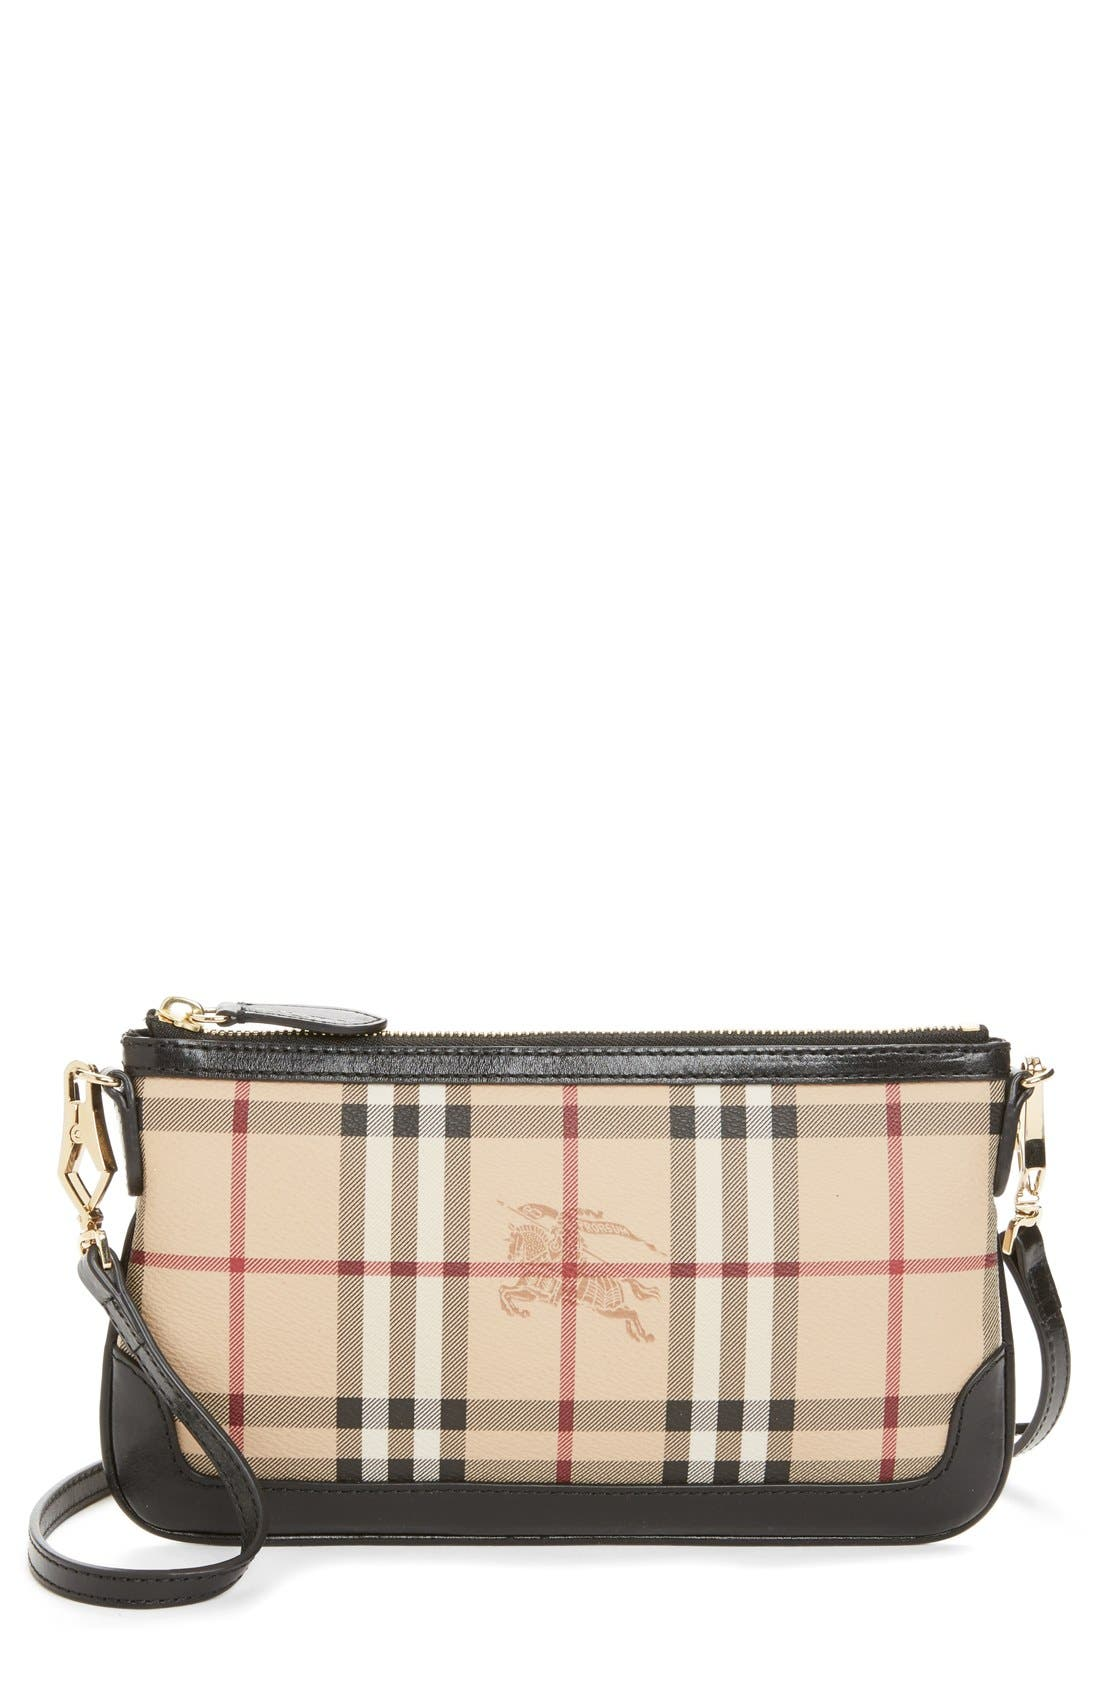 Alternate Image 1 Selected - Burberry 'Peyton - Haymarket Check' Crossbody Bag